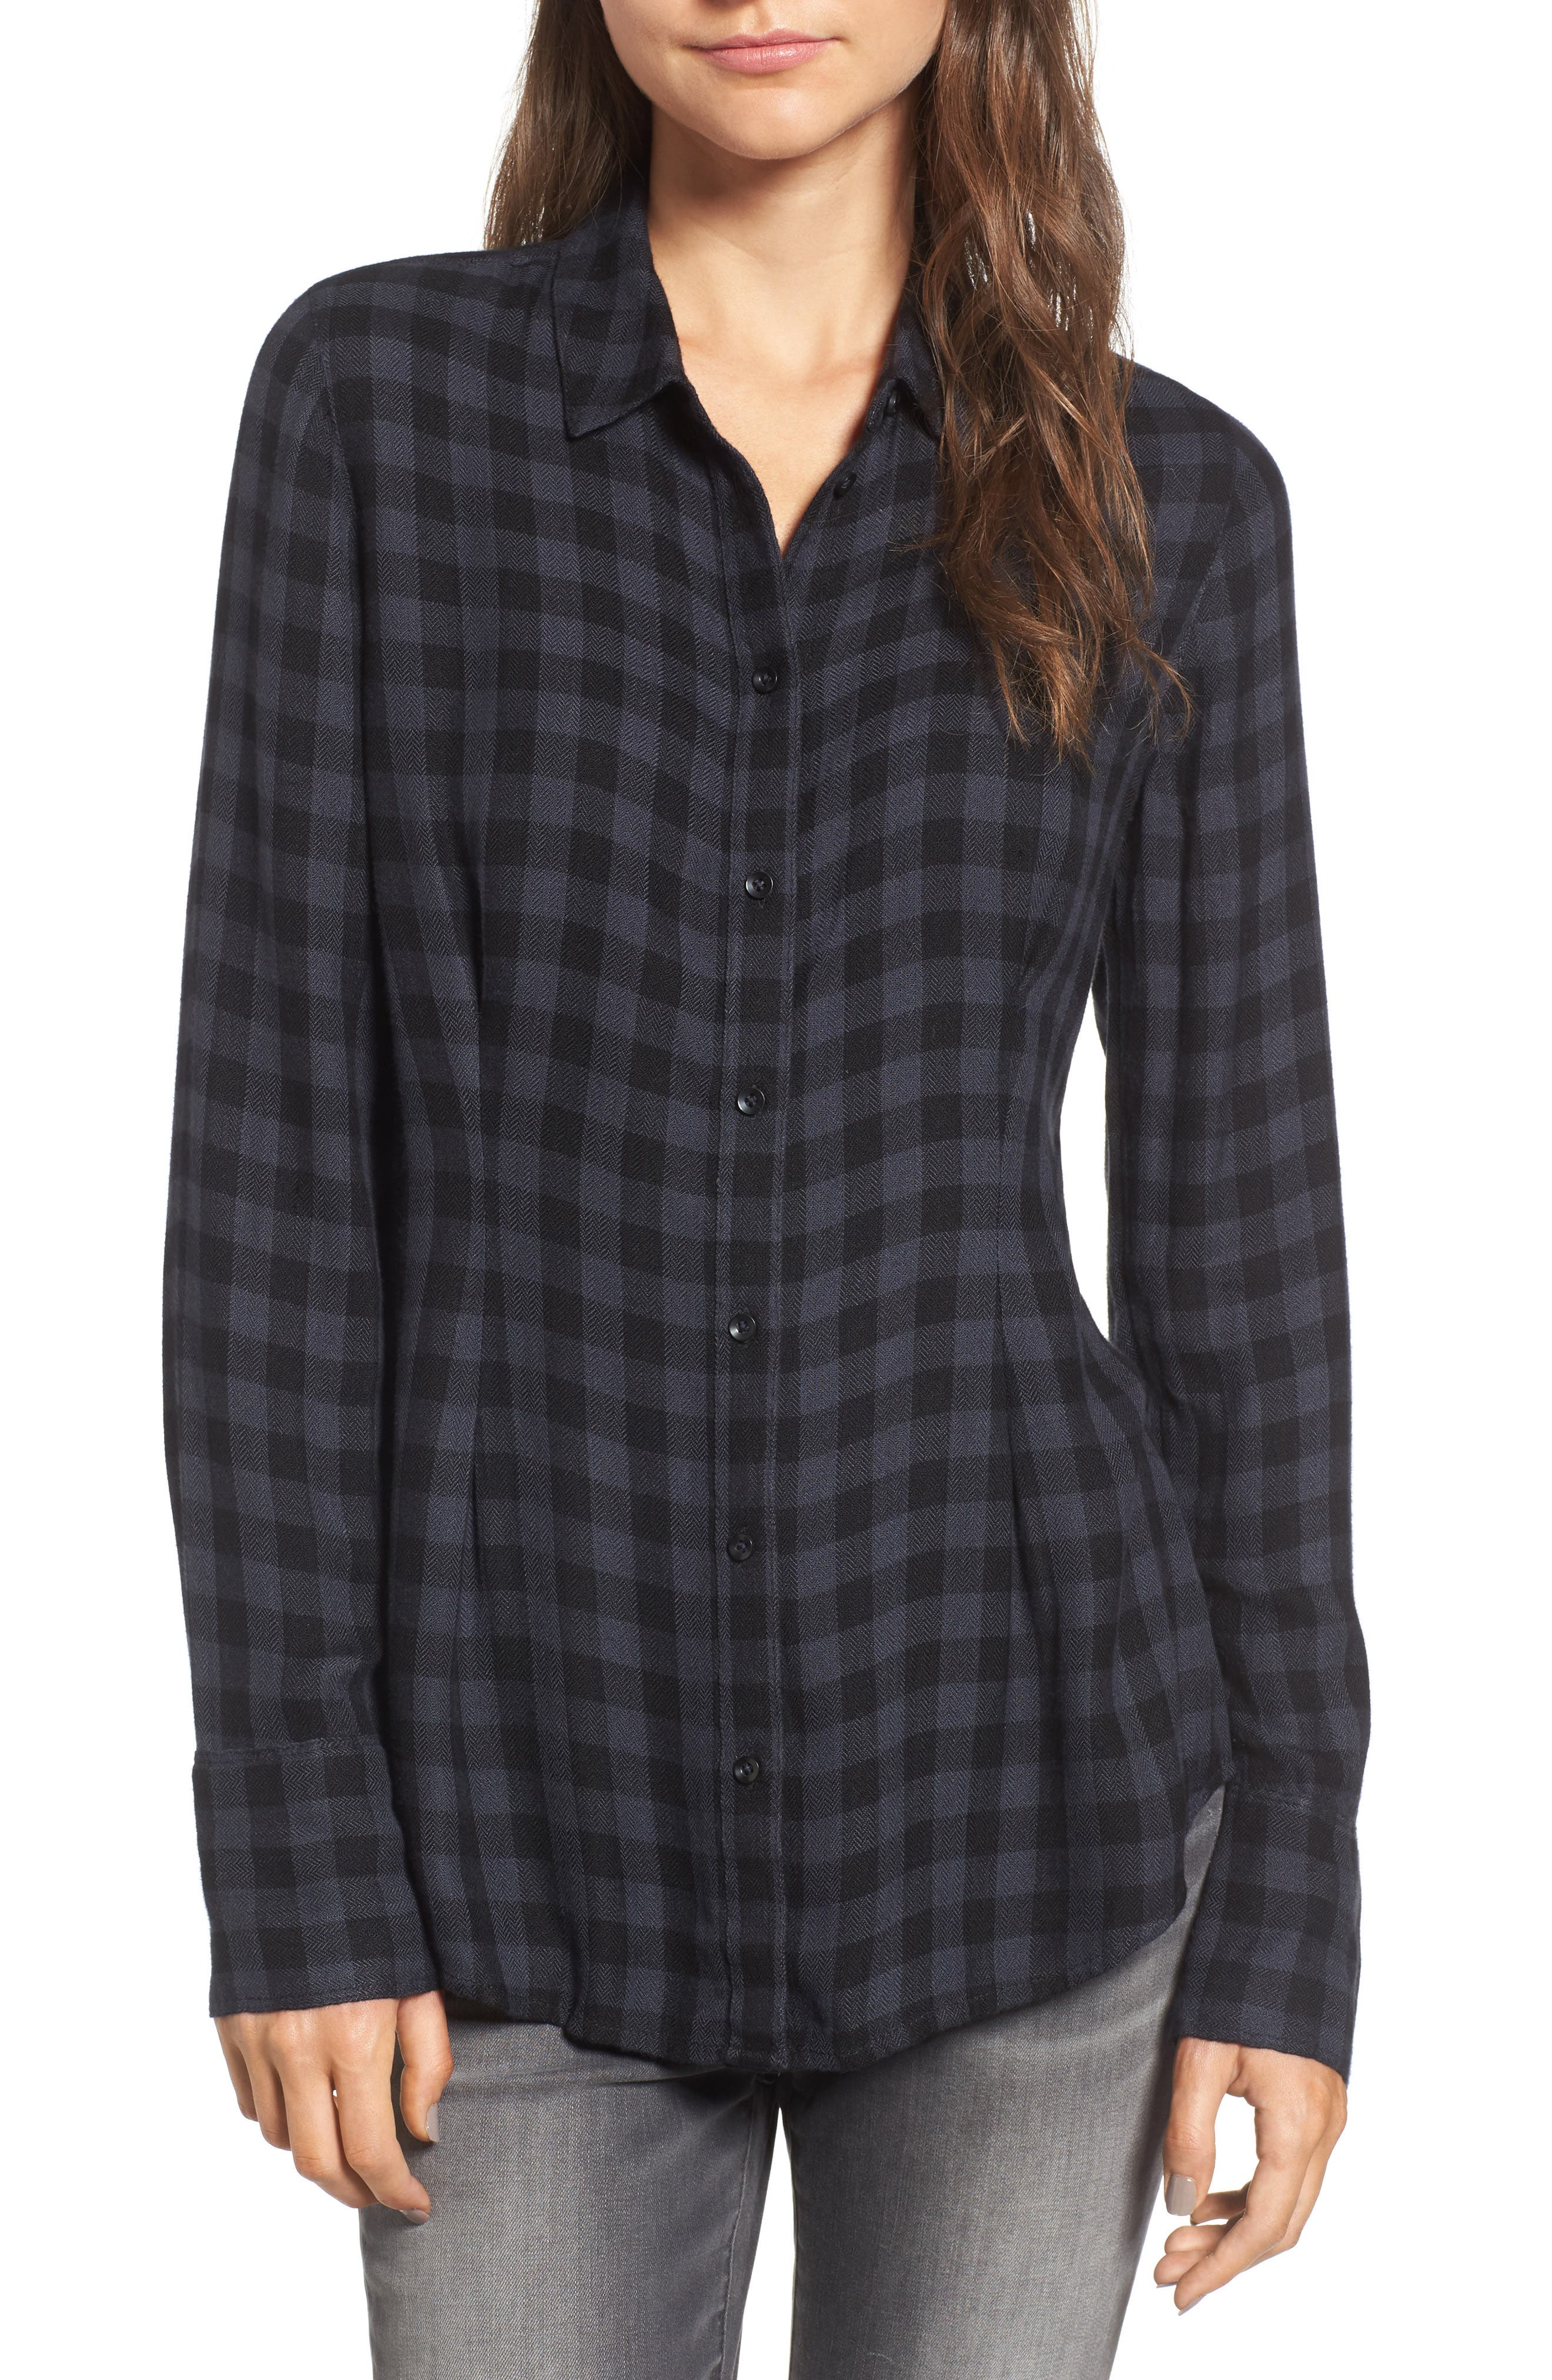 Alternate Image 1 Selected - Treasure & Bond Plaid Corset Shirt